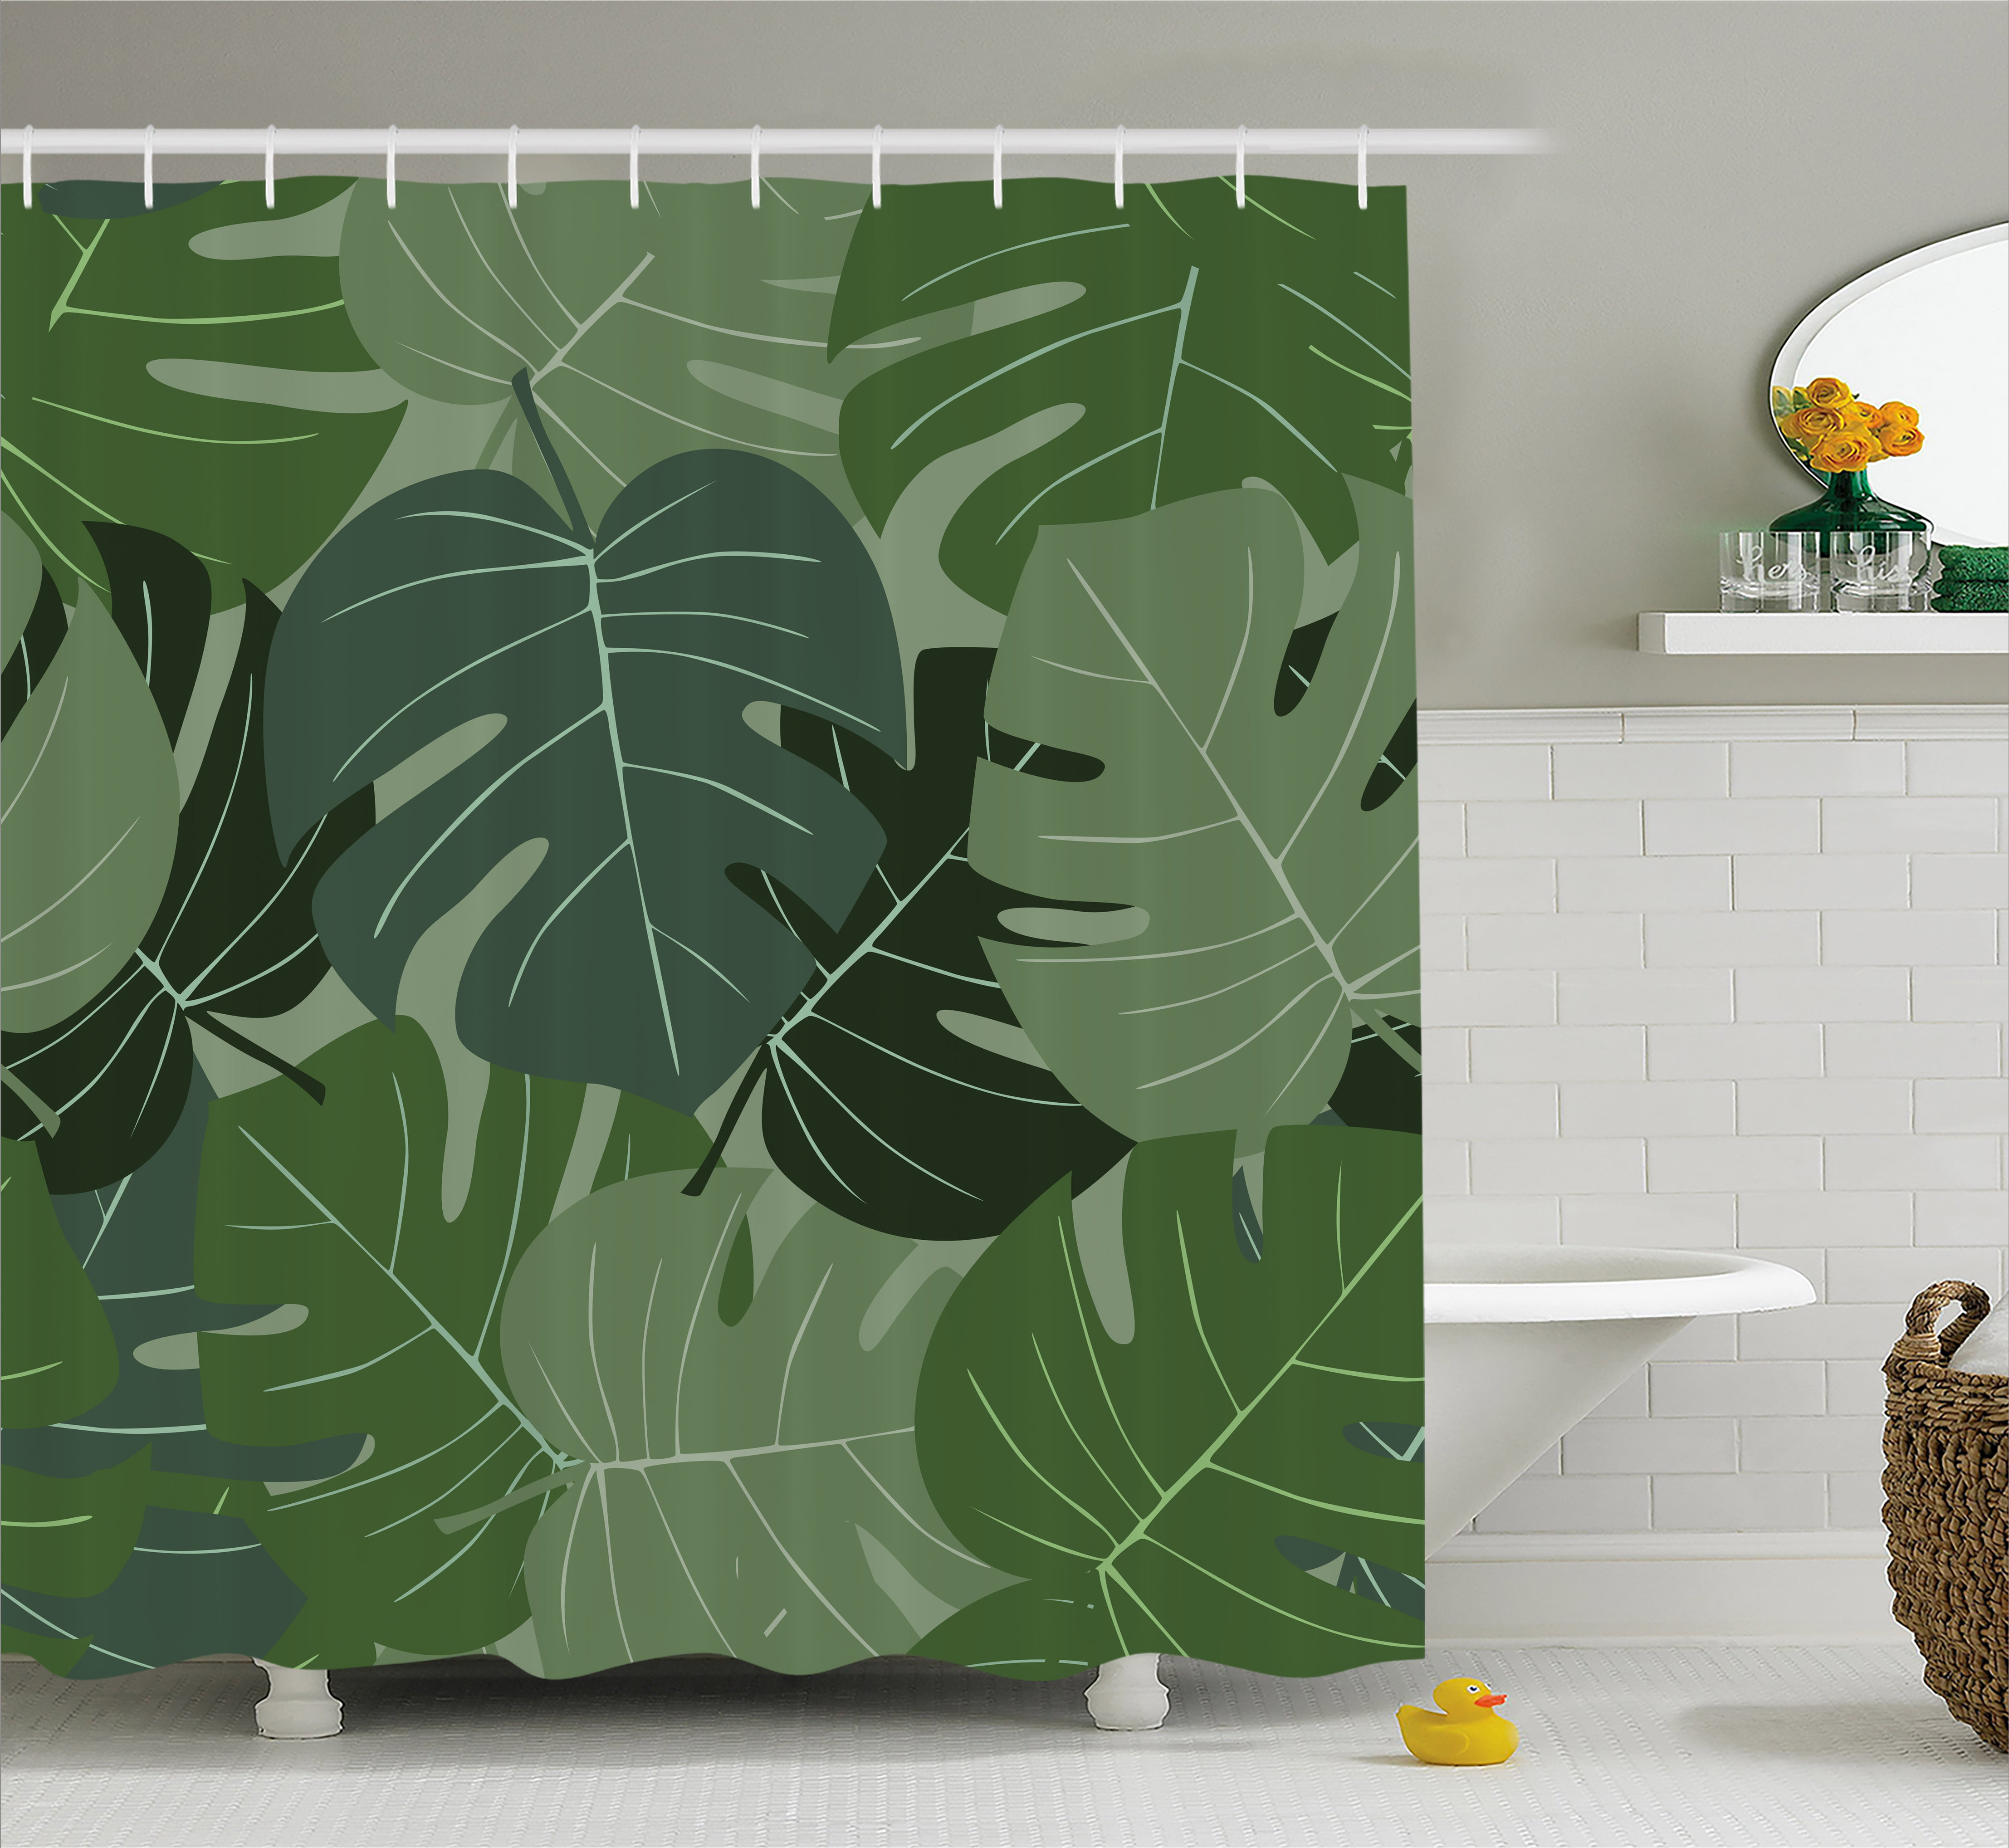 Forest Green Shower Curtain Camouflage Pattern Of Palm Leaves Tropical Nature Themed Foliage Fabric Bathroom Set With Hooks 69W X 75L Inches Long